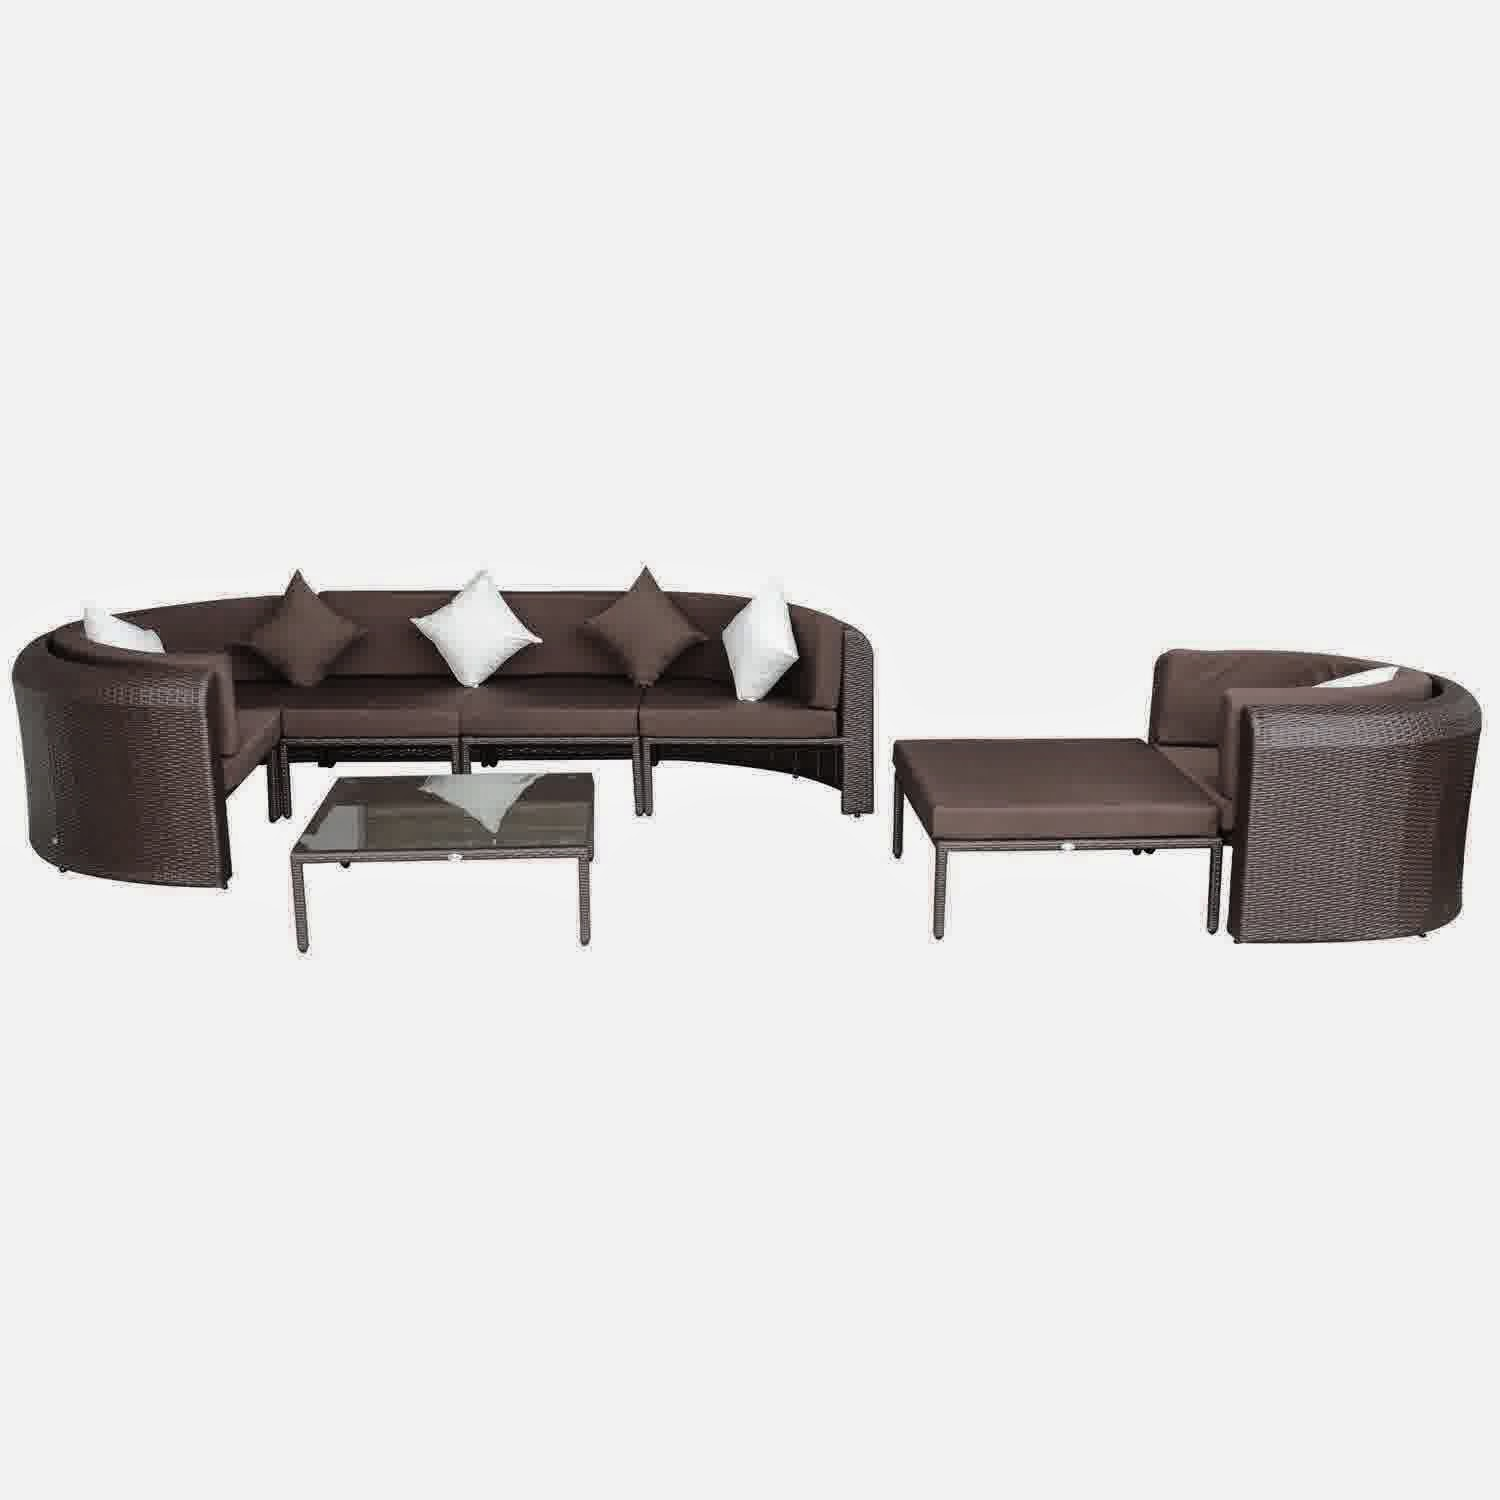 Special sale discount 65 outsunny 8pc outdoor pe rattan for Outdoor sectional sofa for sale